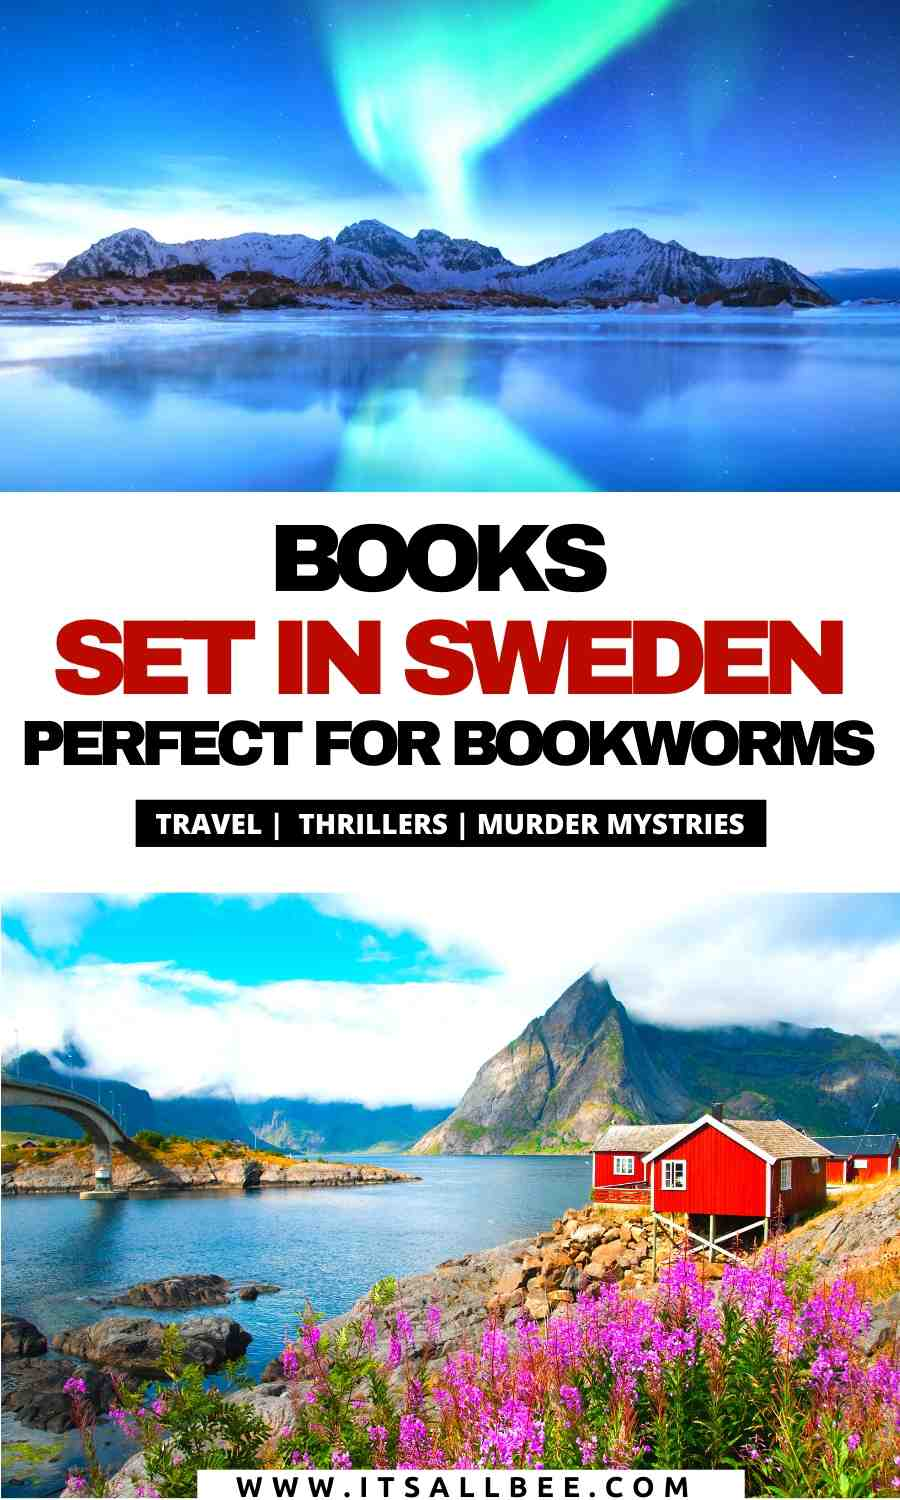 The Best Books About Sweden Itsallbee Travel Blog In 2020 Norway Travel Scandinavia Travel Travel